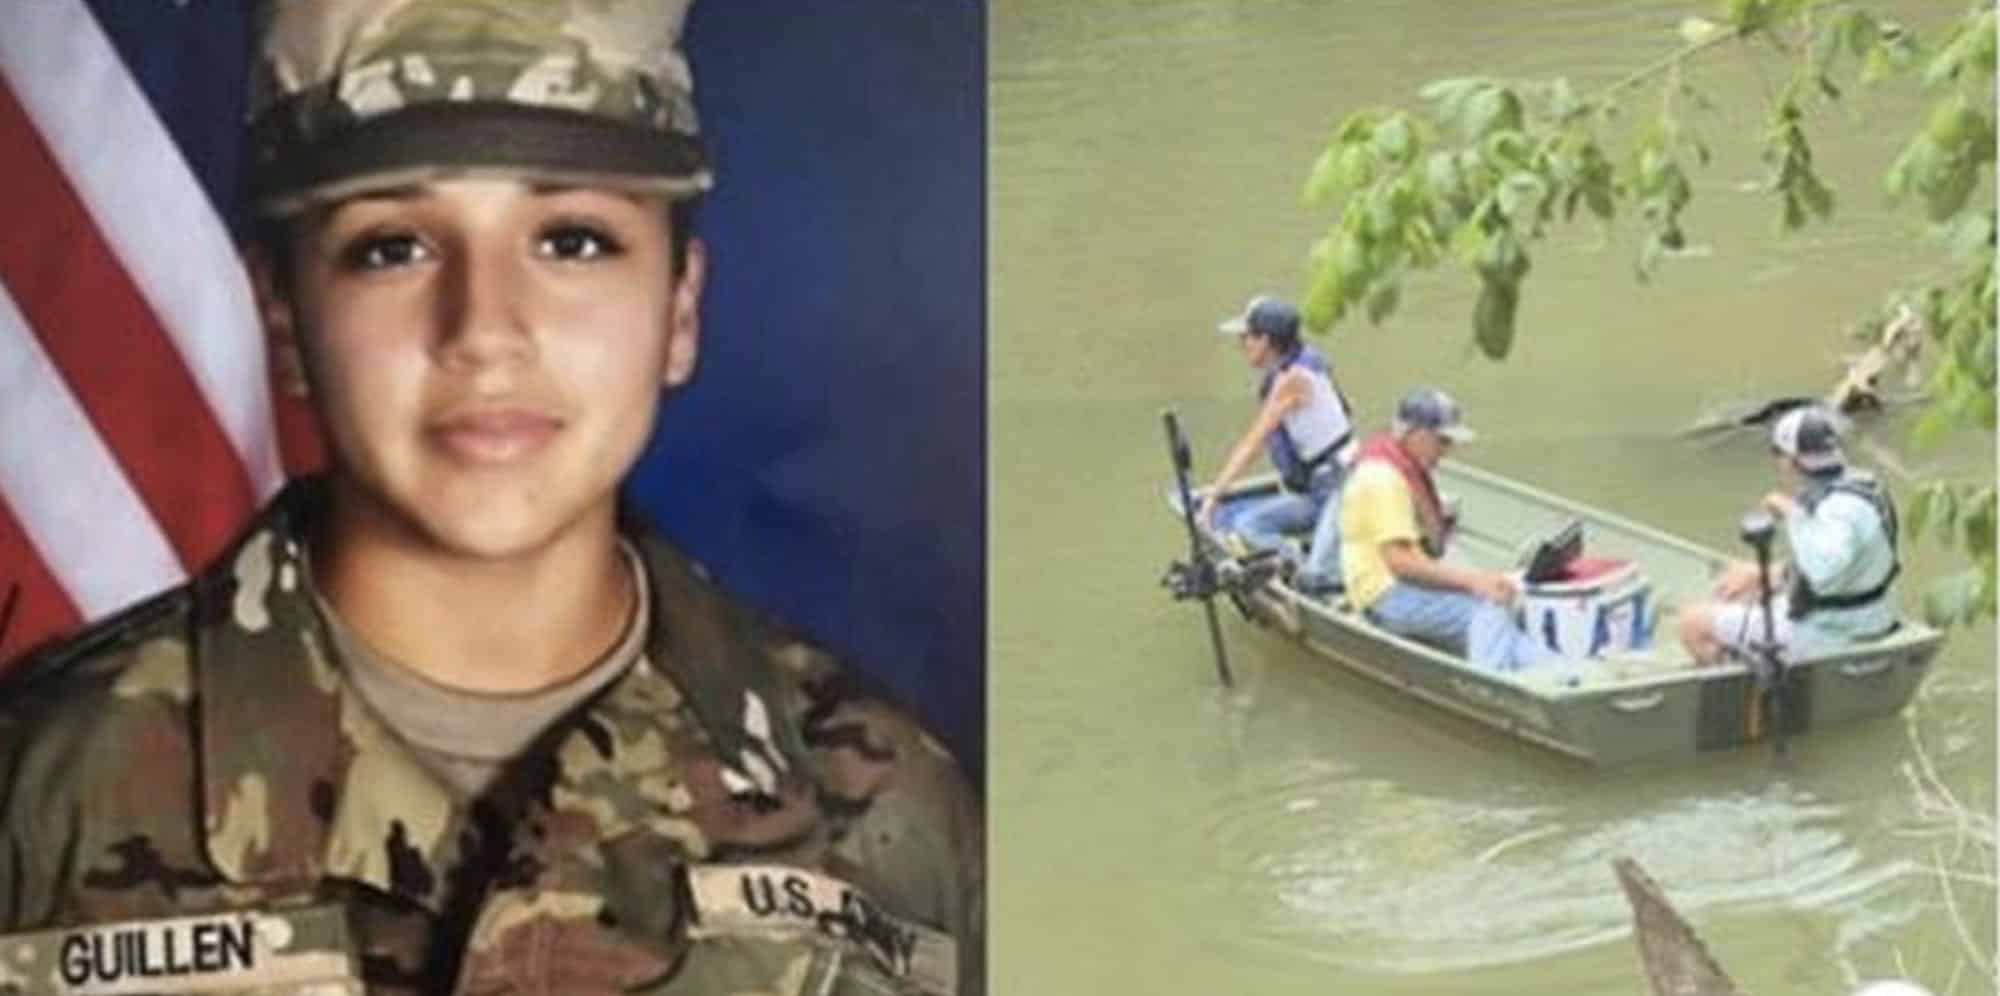 Foot soldiers, ATVs, horses, sonar and drones used in search for missing Fort Hood soldier, Vanessa Guillen